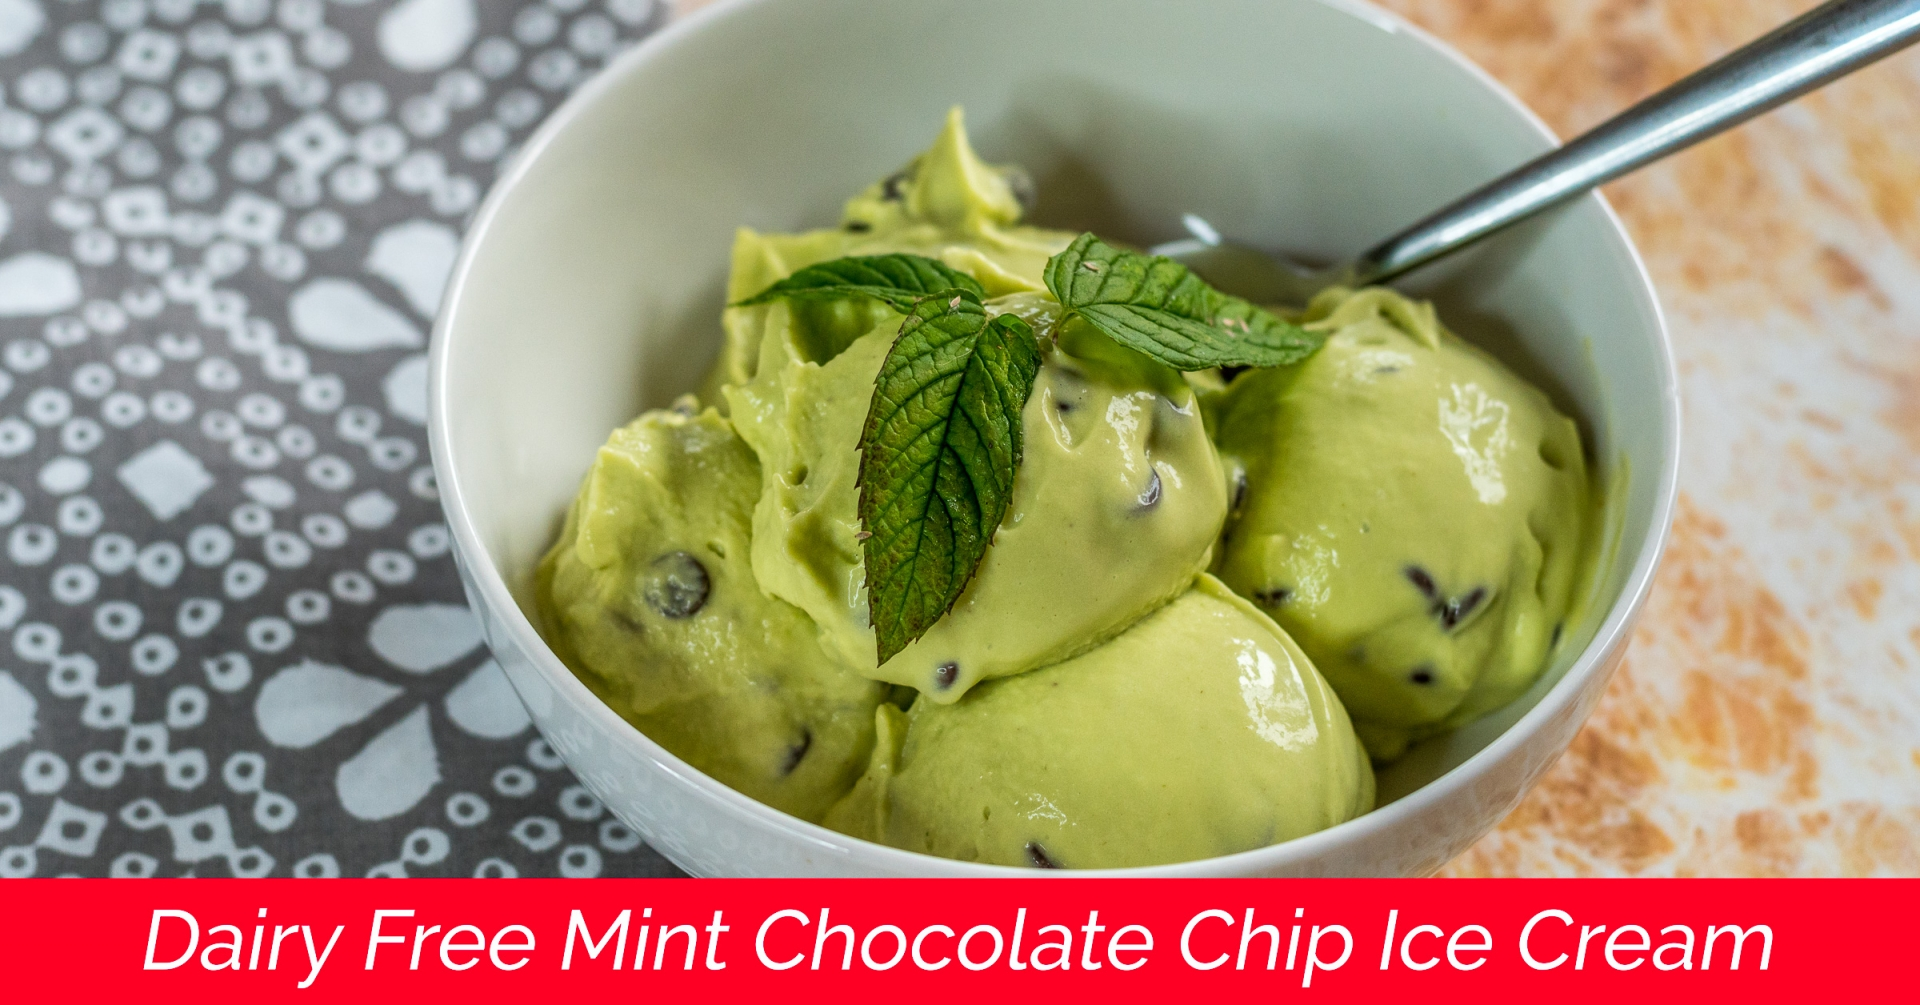 Learn to create Dairy Free Mint Chocolate Chip Ice Cream that is also low carb friendly